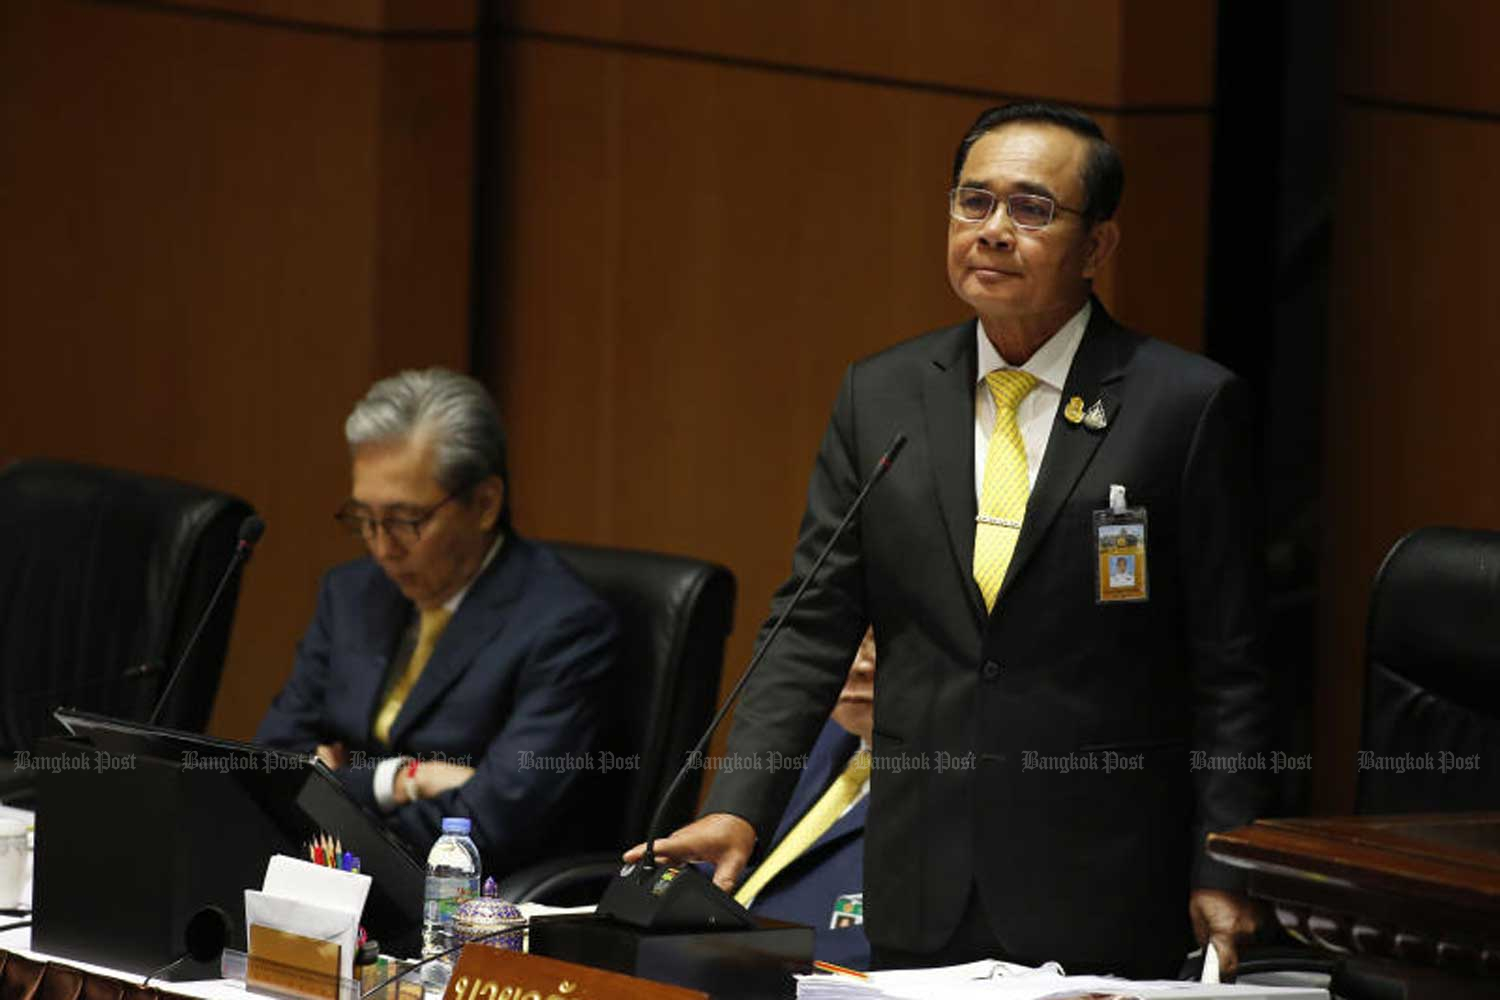 Prime Minister Prayut Chan-o-cha is a parliamentary session when he stated government policies on July 25. (Photo by Pattarapong Chatpattarasill)